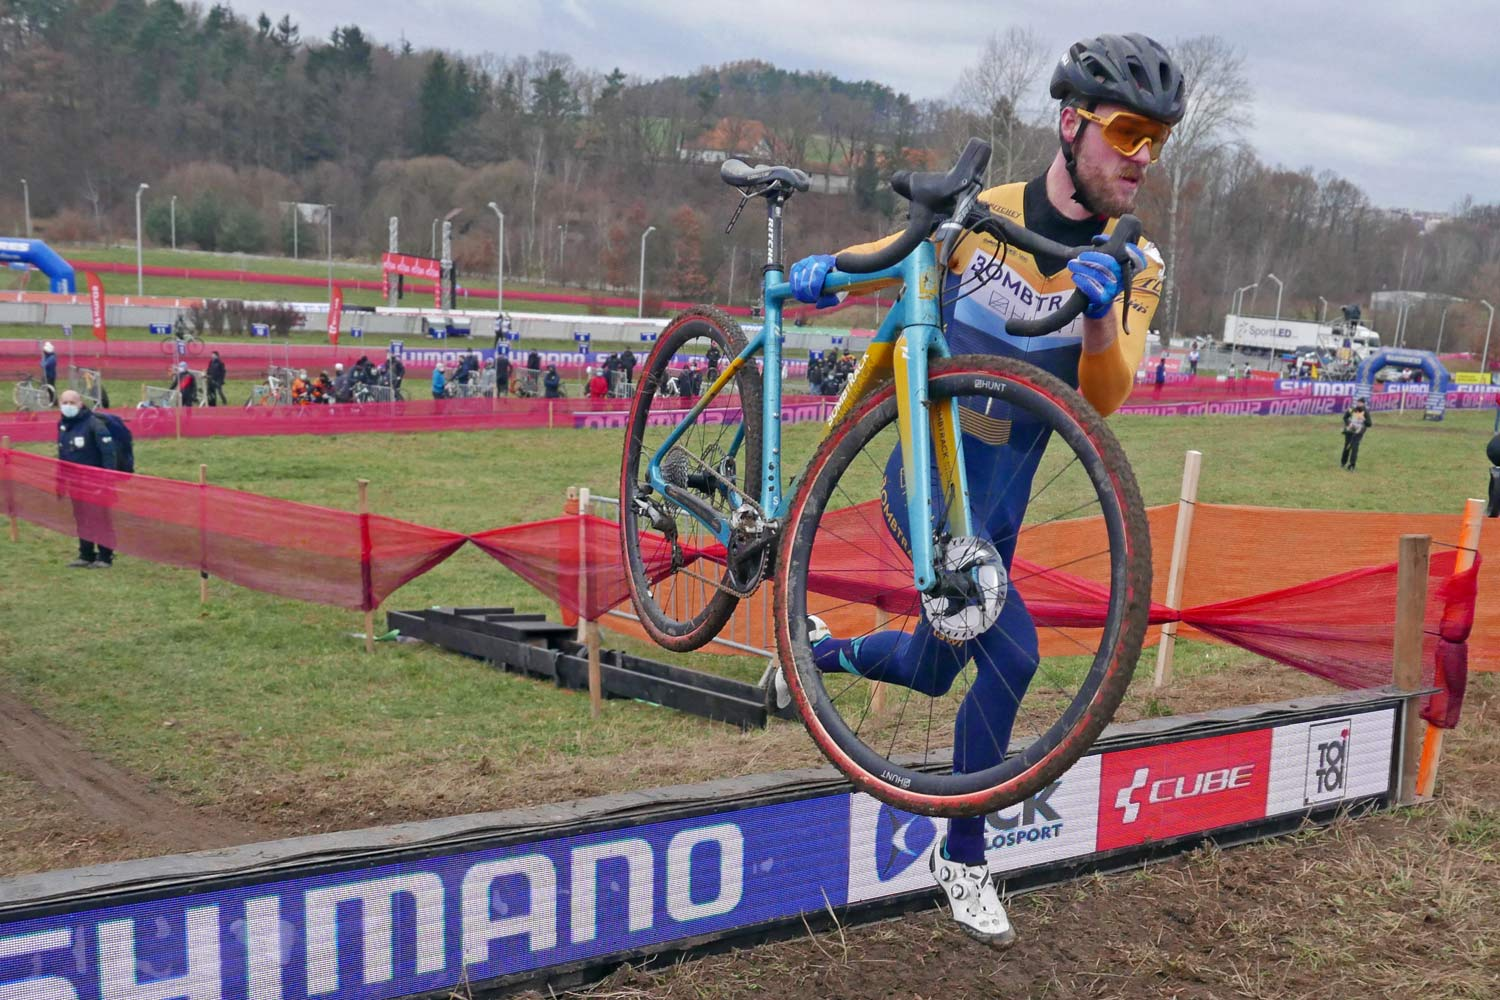 CX Pro Bike Check: bicicleta de cross de carbono Bombtrack Tension C de Gosse van der Meer